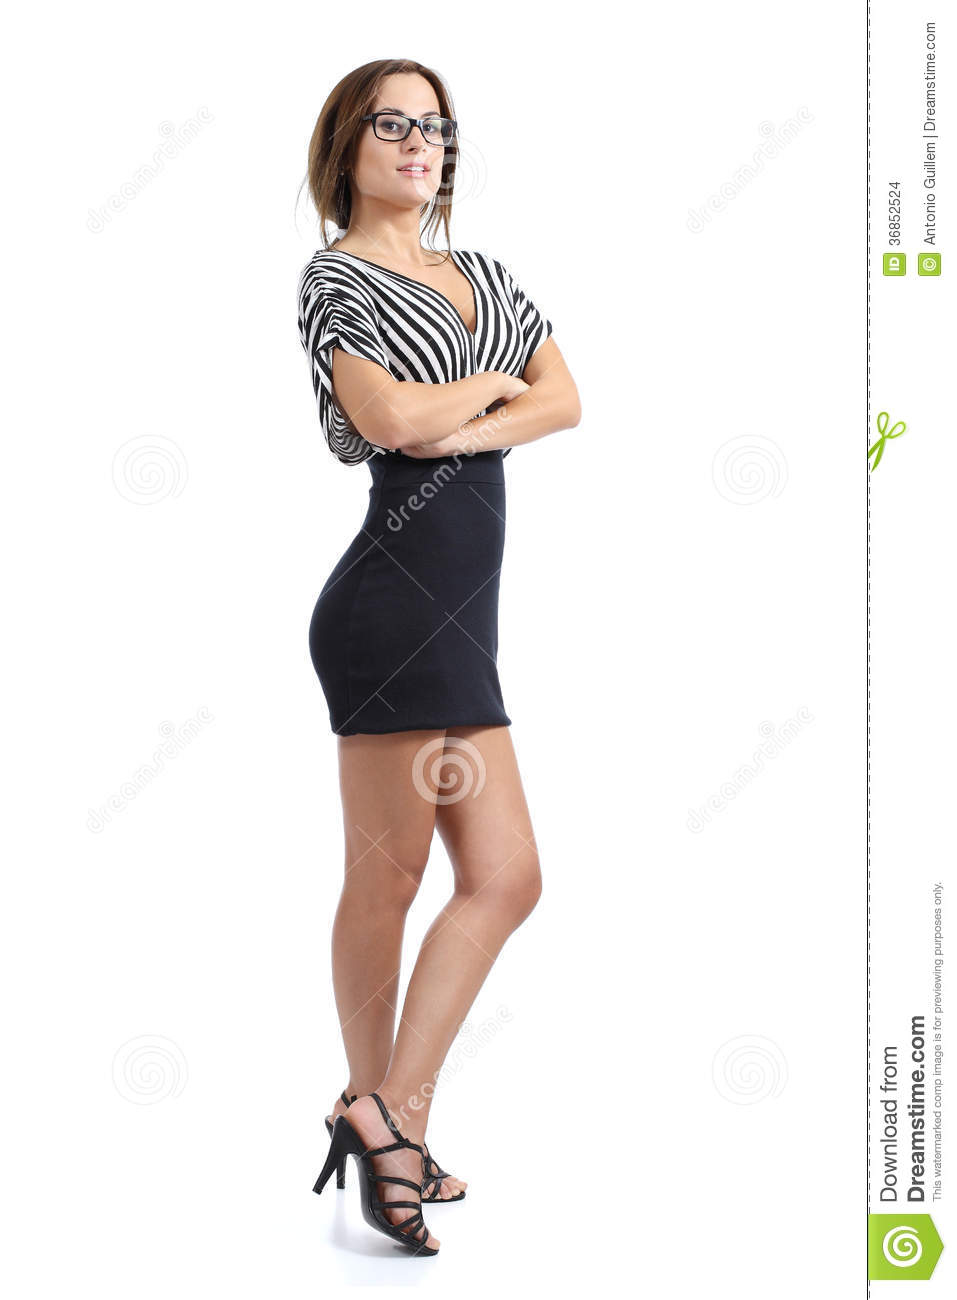 beautiful model woman posing standing with folded arms